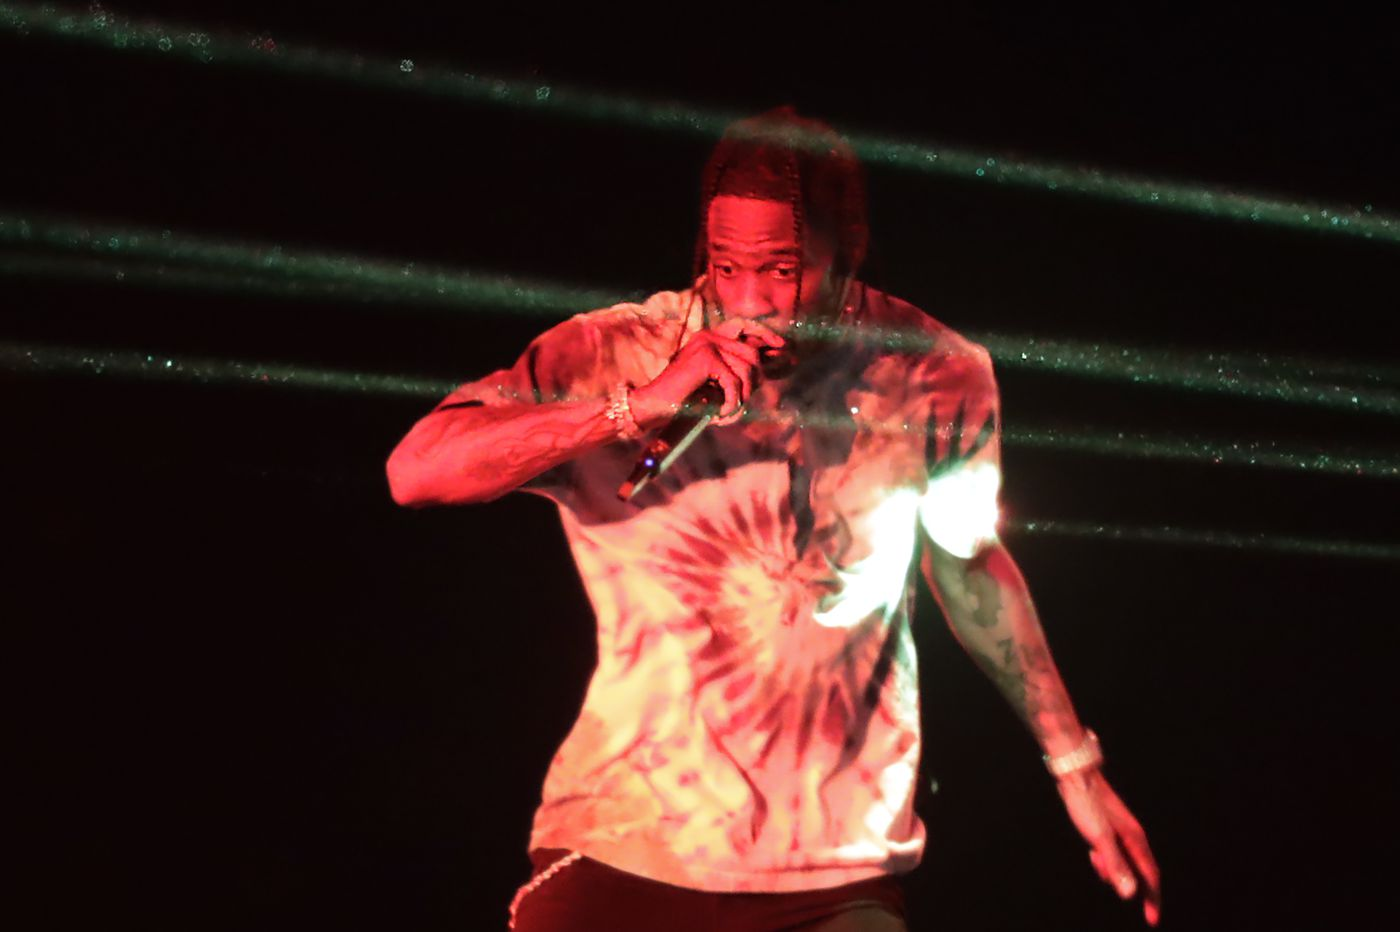 Travis Scott closes out Made in America 2019 with fireworks and controlled chaos